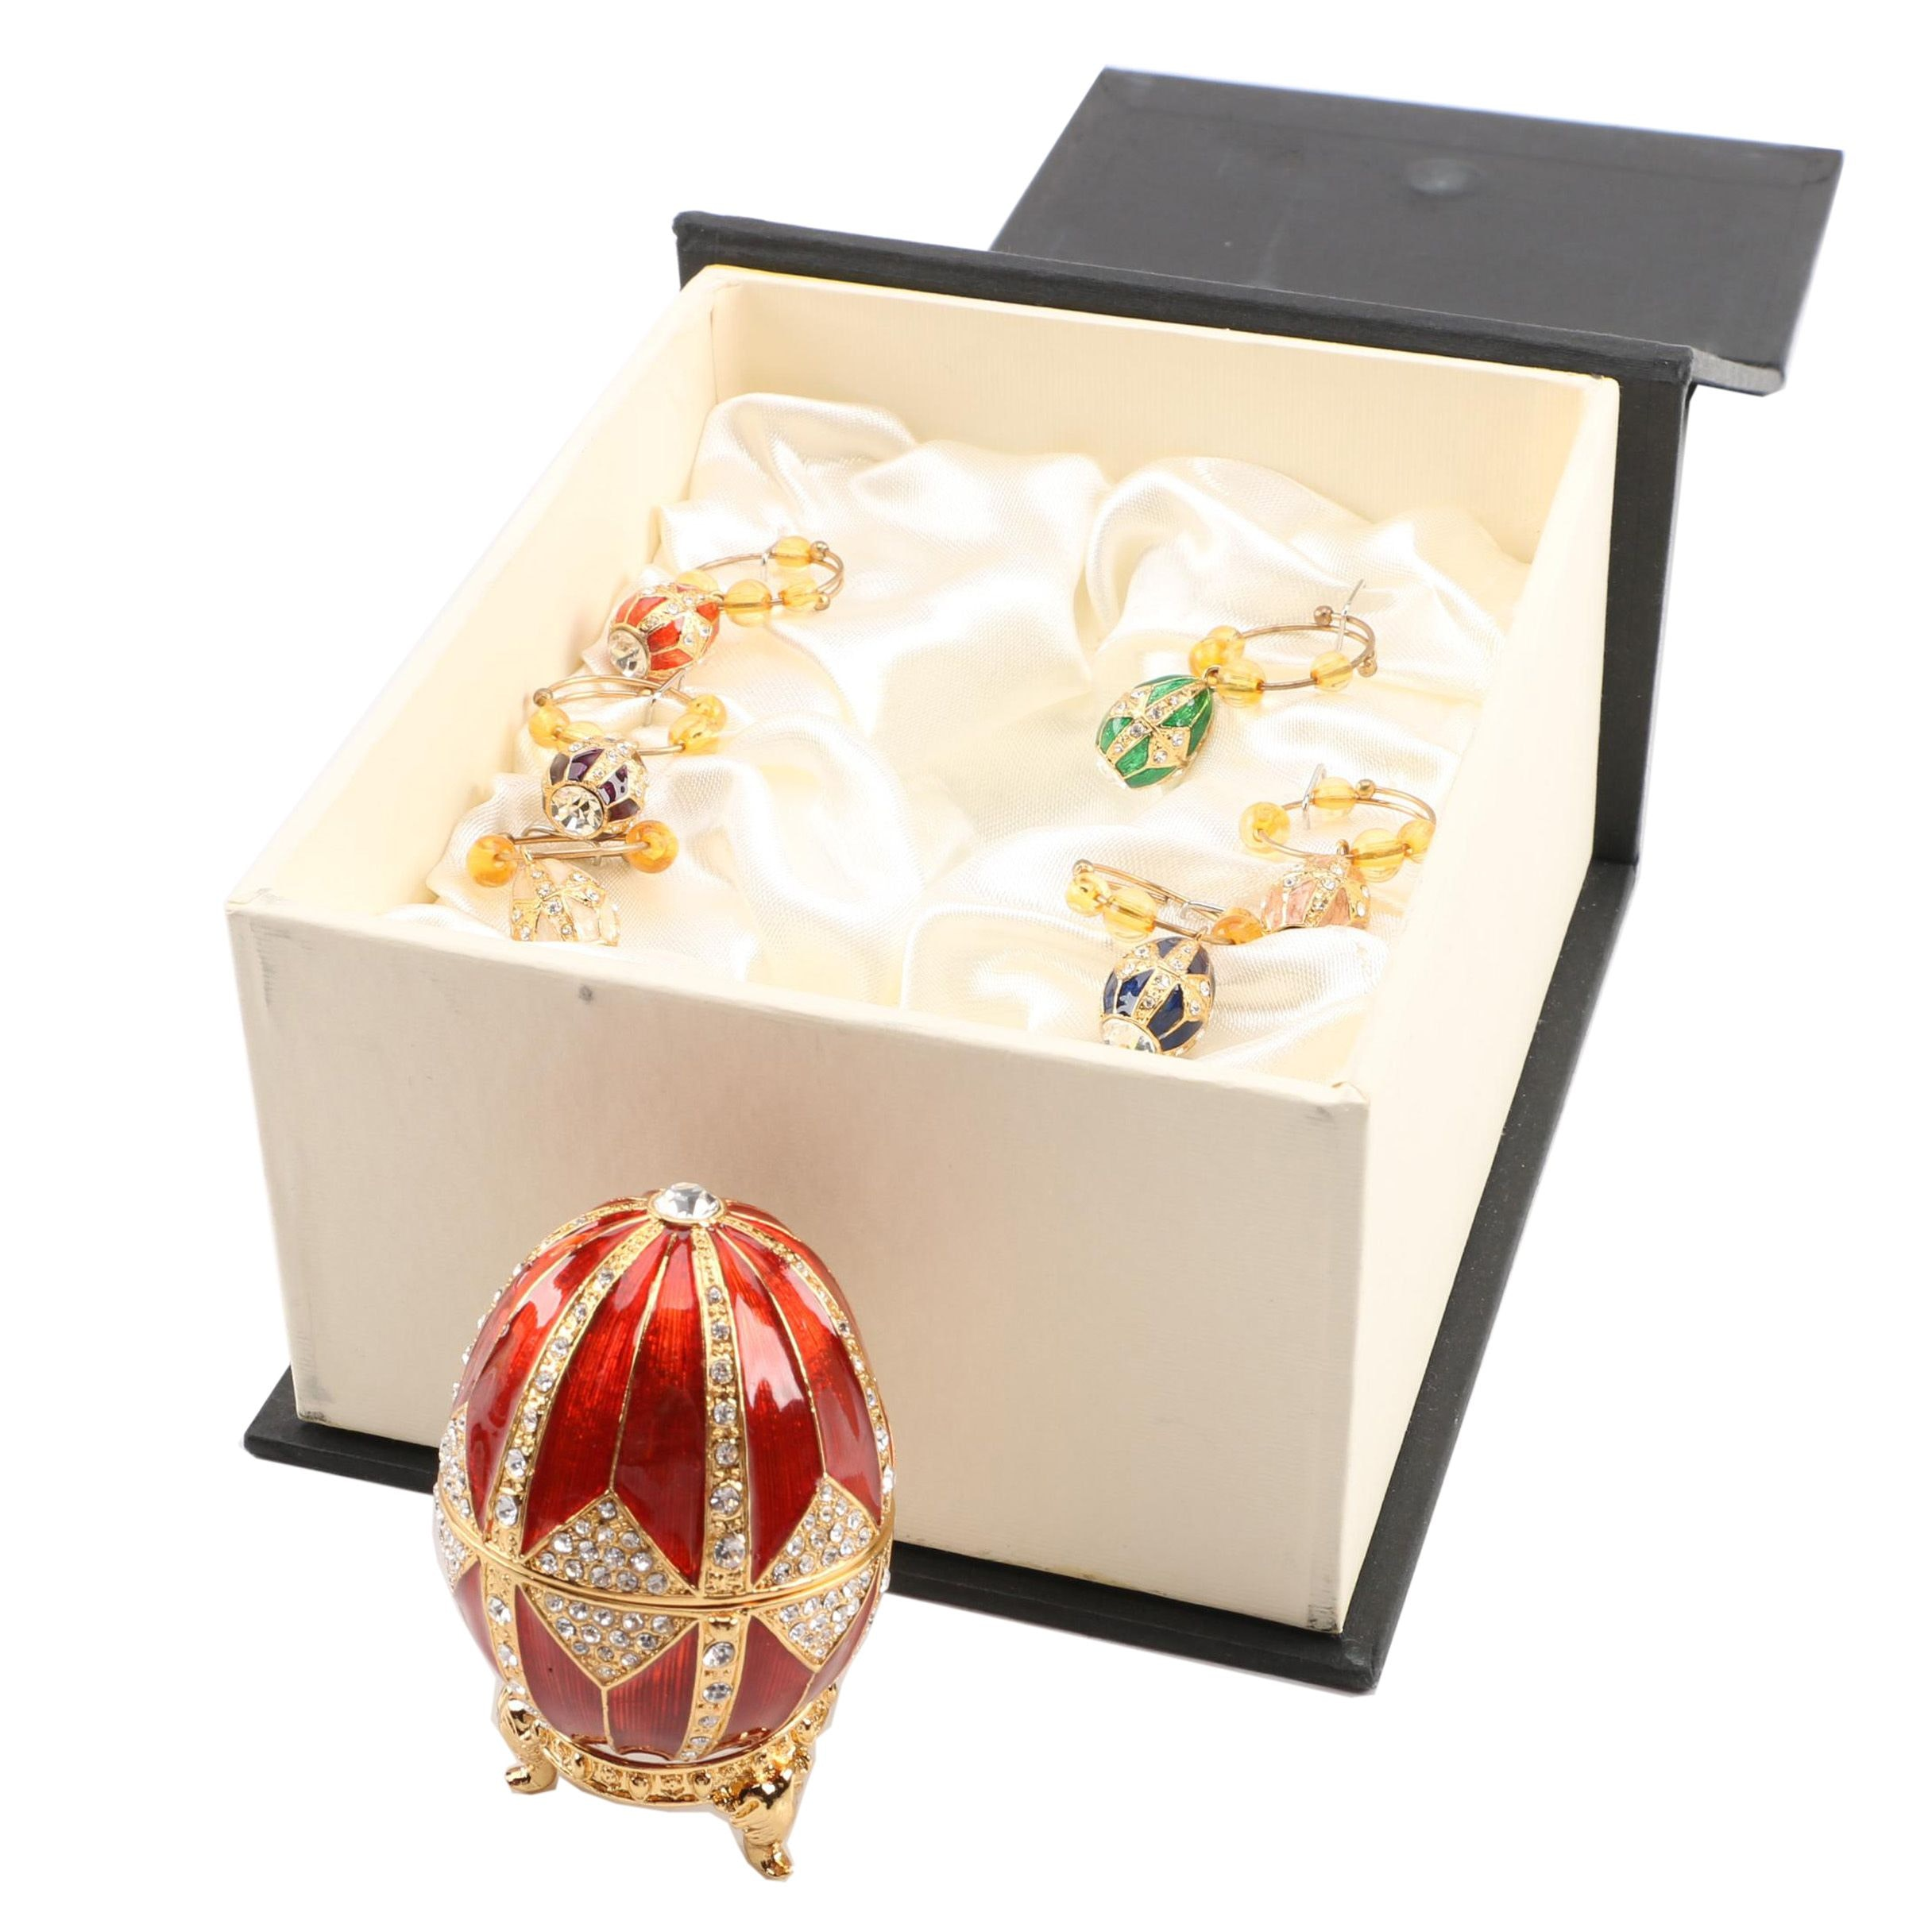 Fitz and Floyd Enamel Egg with Matching Wine Glass Charms